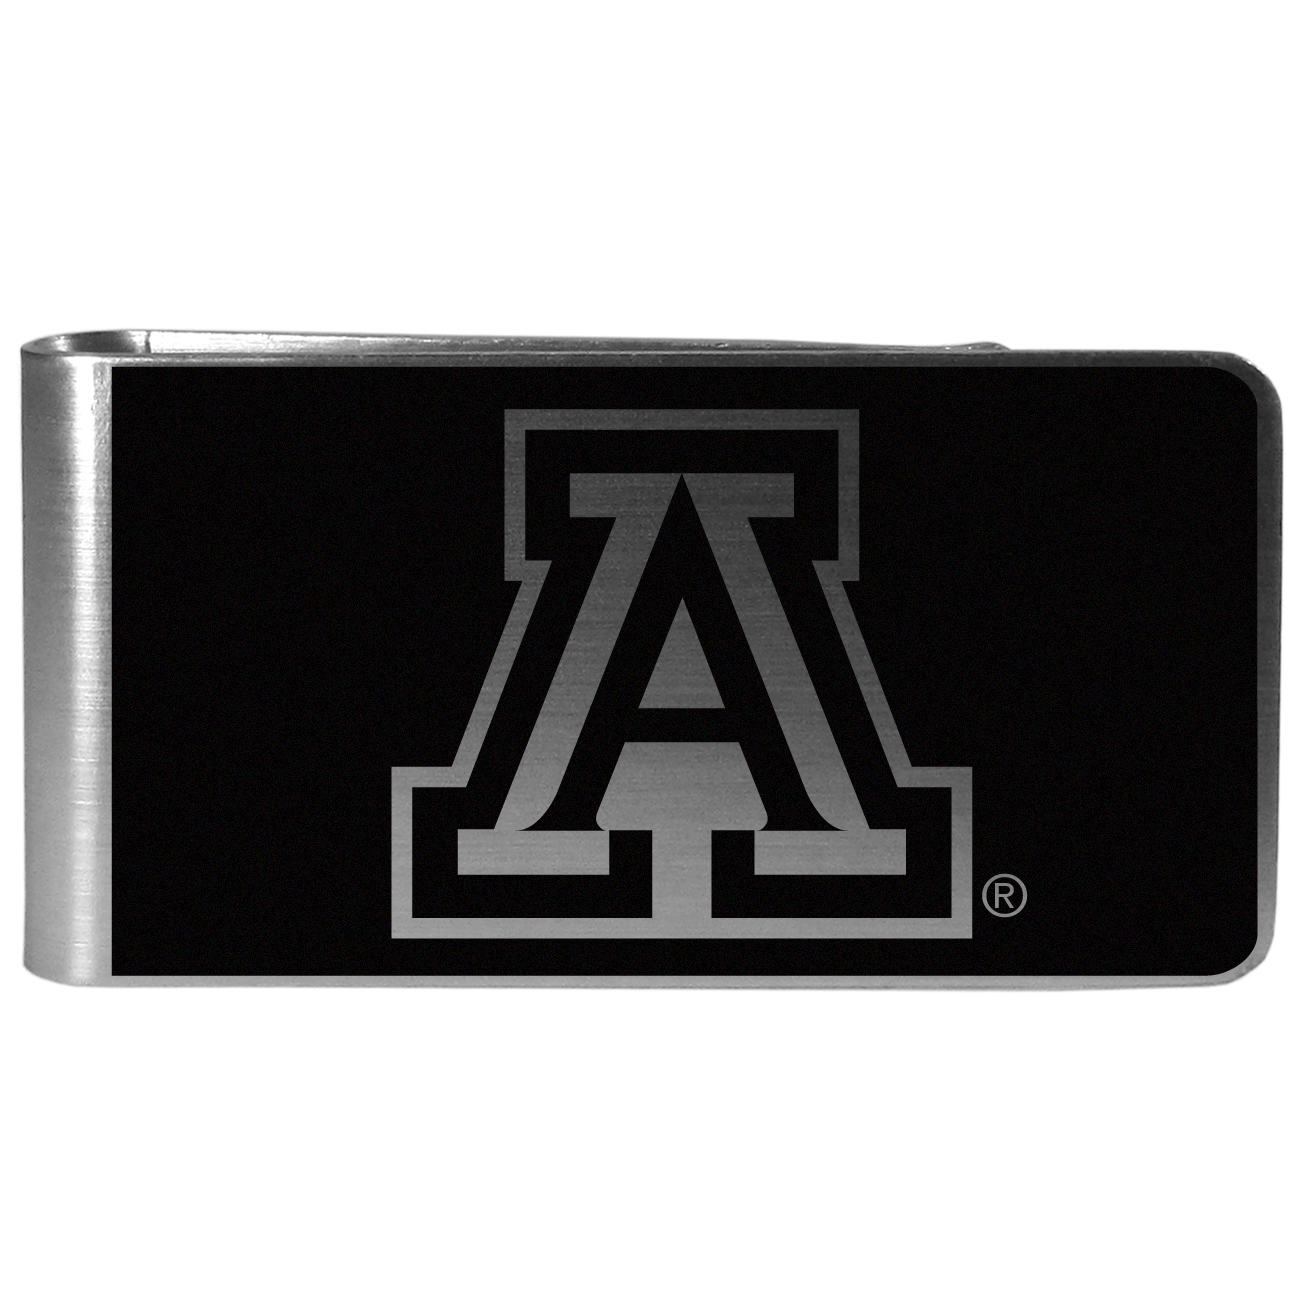 Arizona Wildcats Black and Steel Money Clip - Our monochromatic steel money clips have a classic style and superior quality. The strong, steel clip has a black overlay of the Arizona Wildcats logo over the brushed metal finish creating a stylish men's fashion accessory that would make any fan proud.